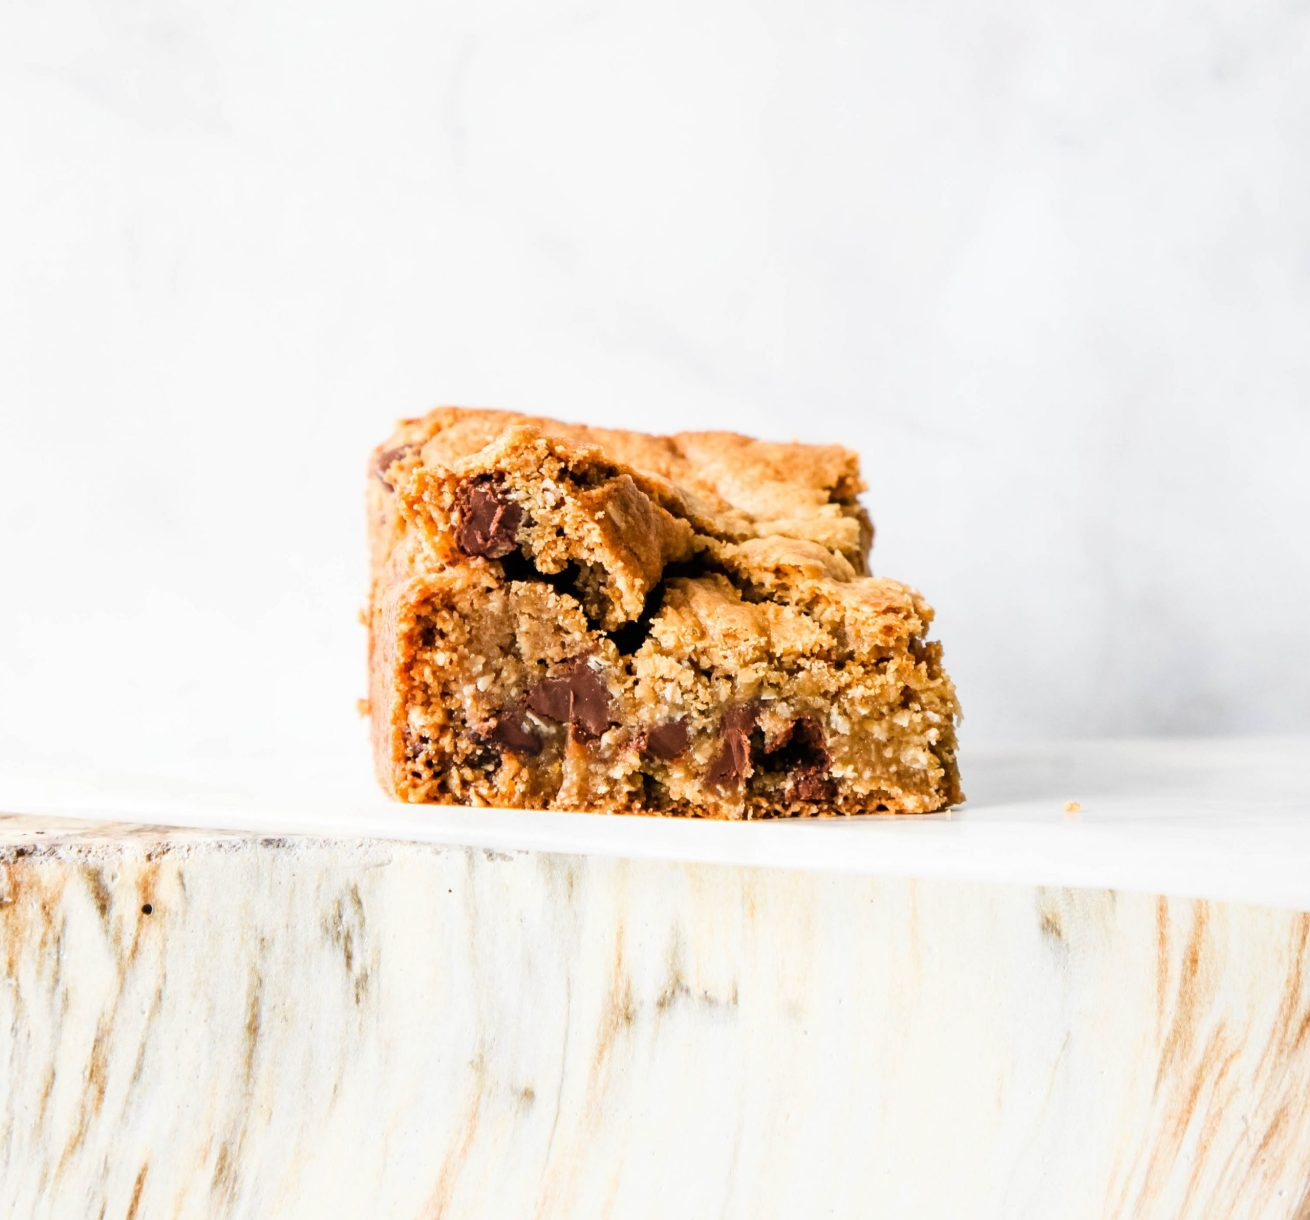 Oat and Almond Chocolate Bar